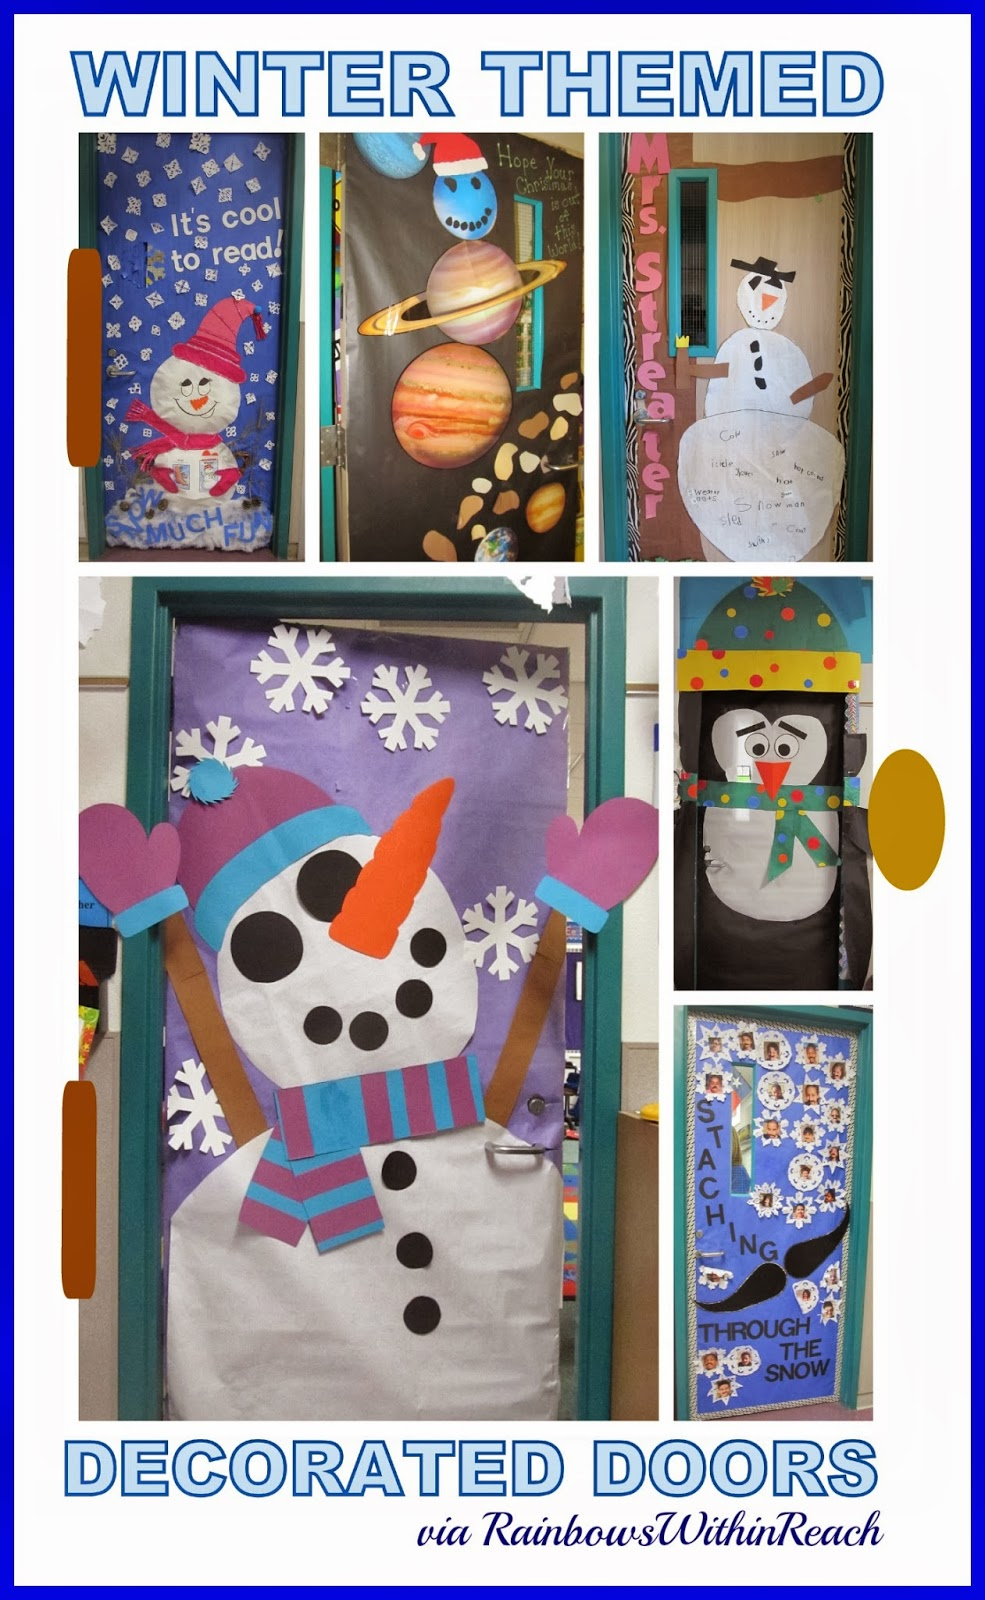 Winter Themed Decorated Doors